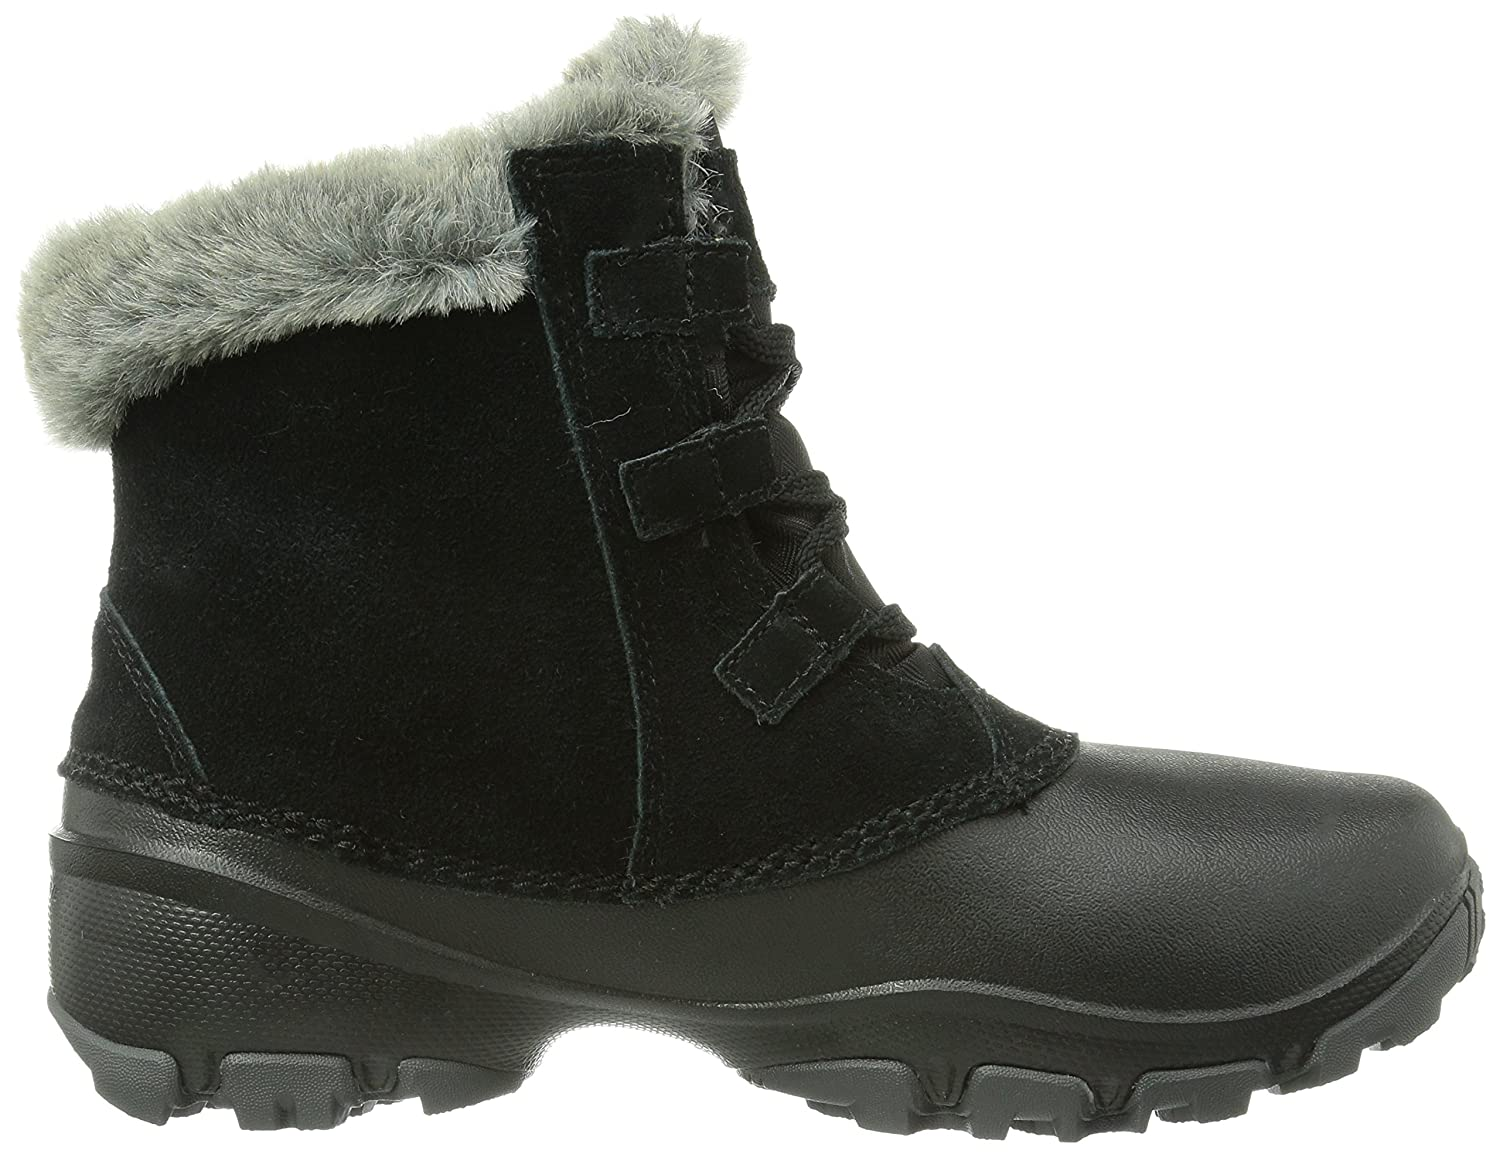 Columbia Women's Sierra Summette Shorty Winter Boot B00GW95VY8 8 B(M) US|Black, Red Plum